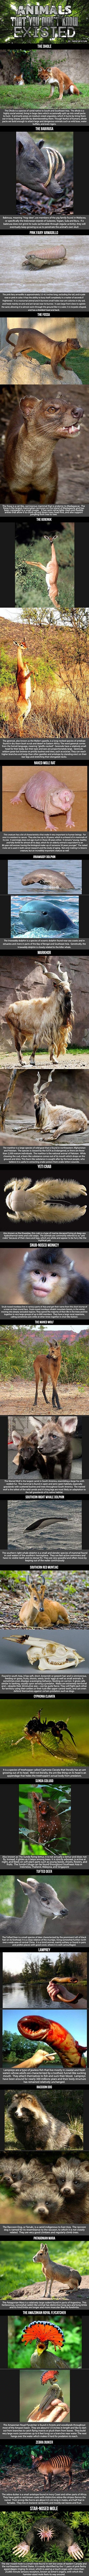 Here are some more strange animals that you probably did not know were real.